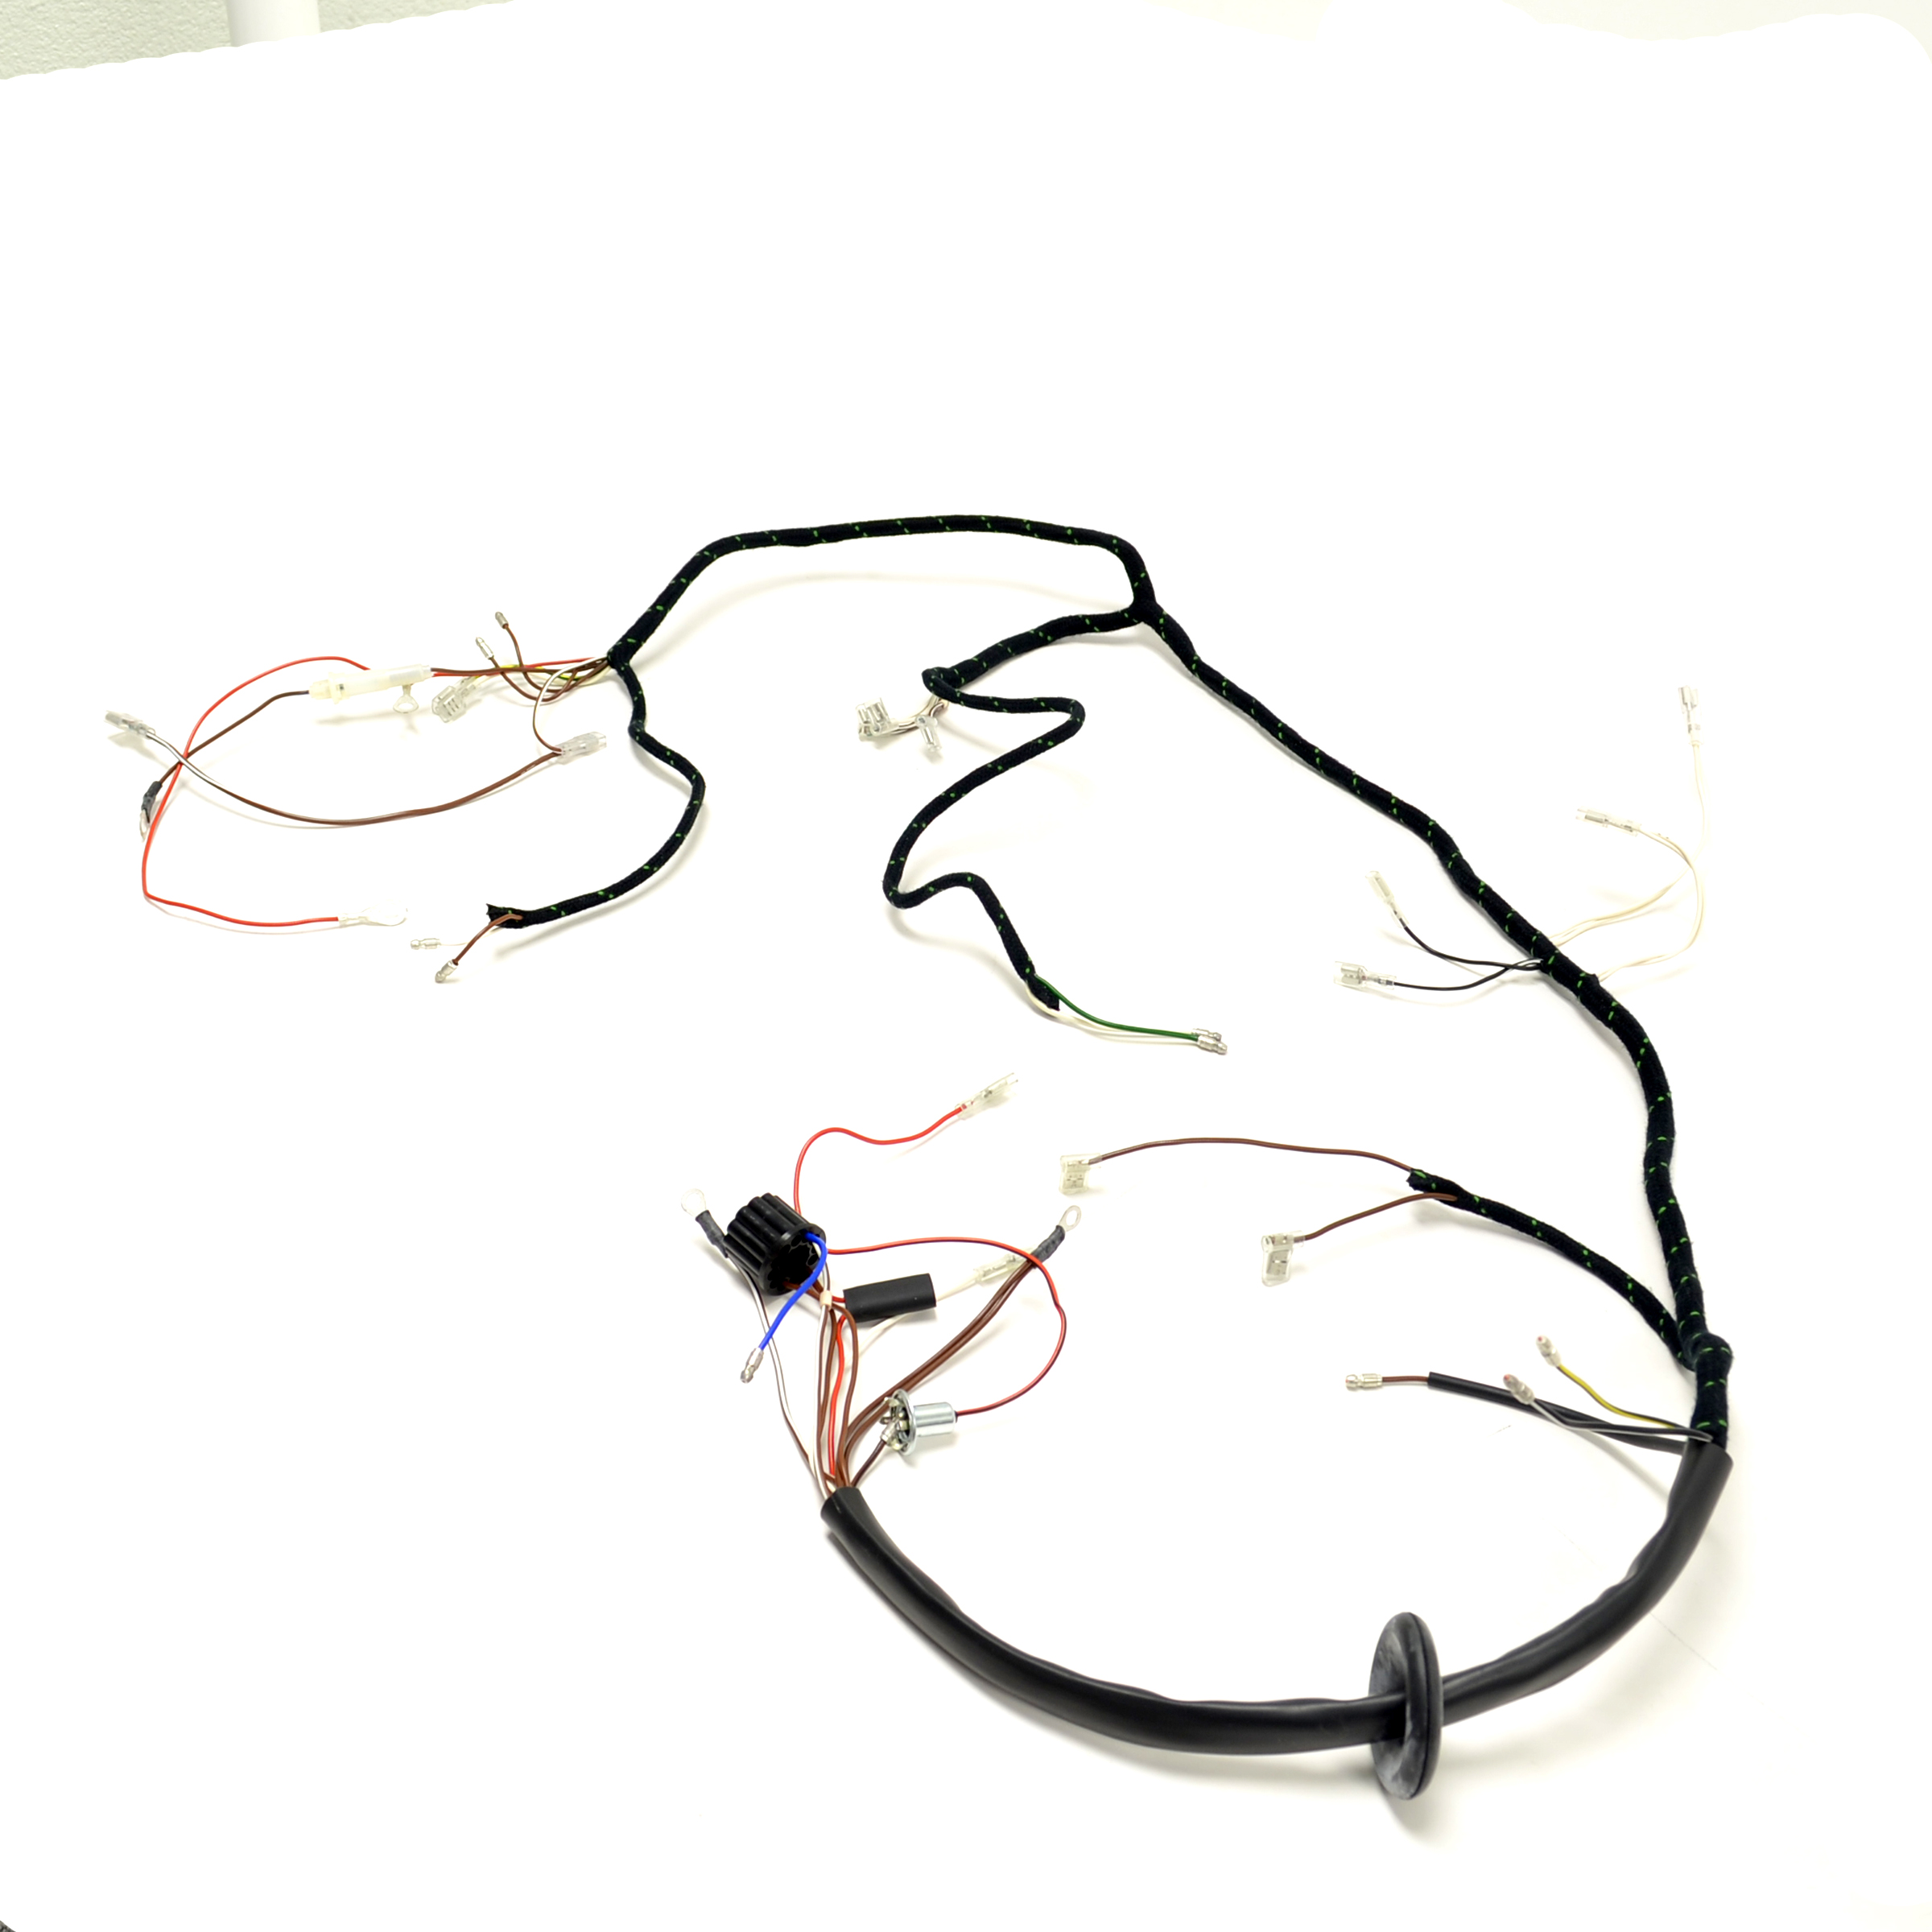 Triumph T90 T100 T120 Tr6 Uk Made Quality Wiring